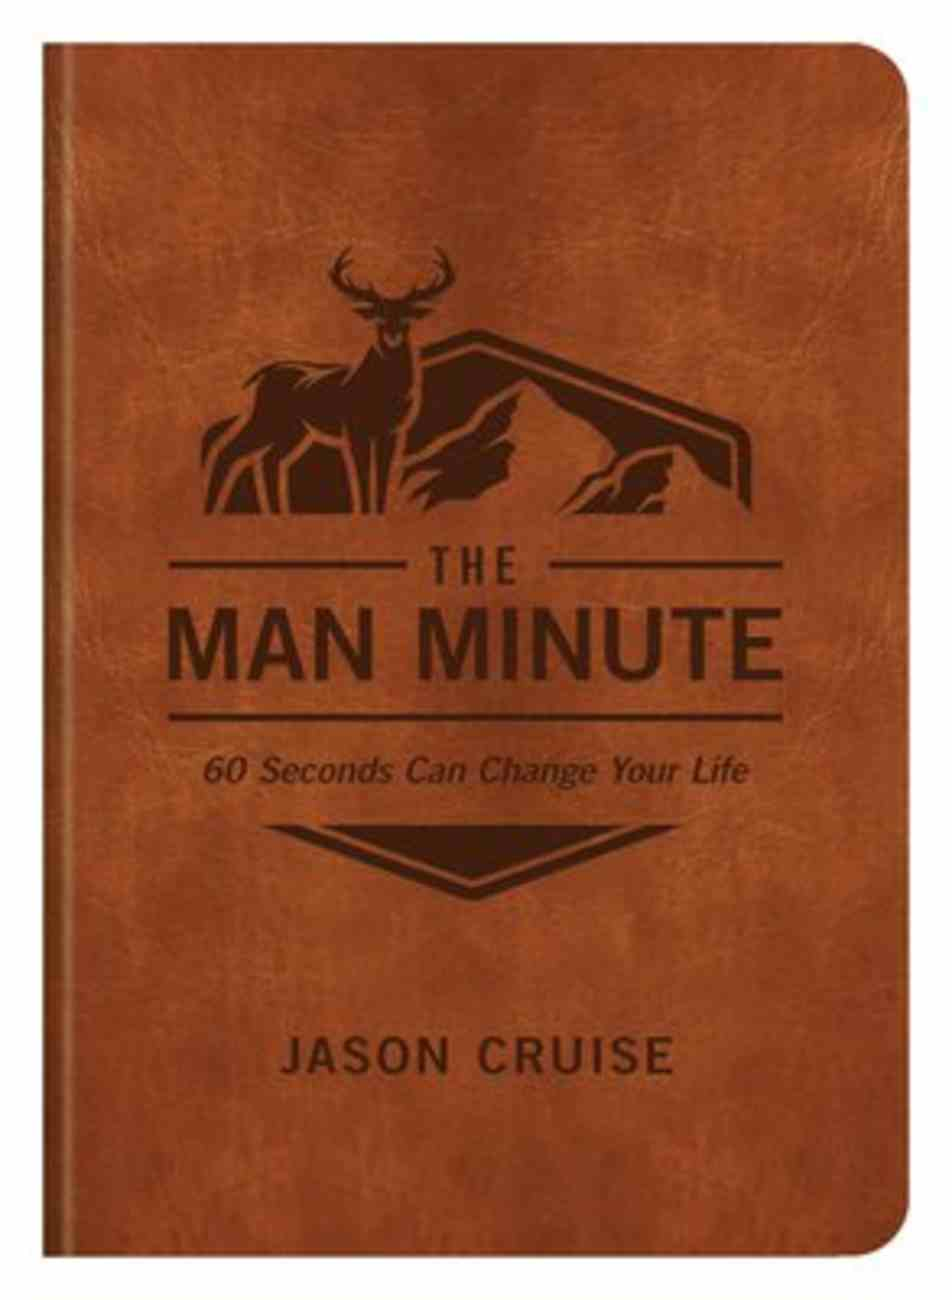 The Man Minute: 60 Seconds Can Change Your Life Paperback